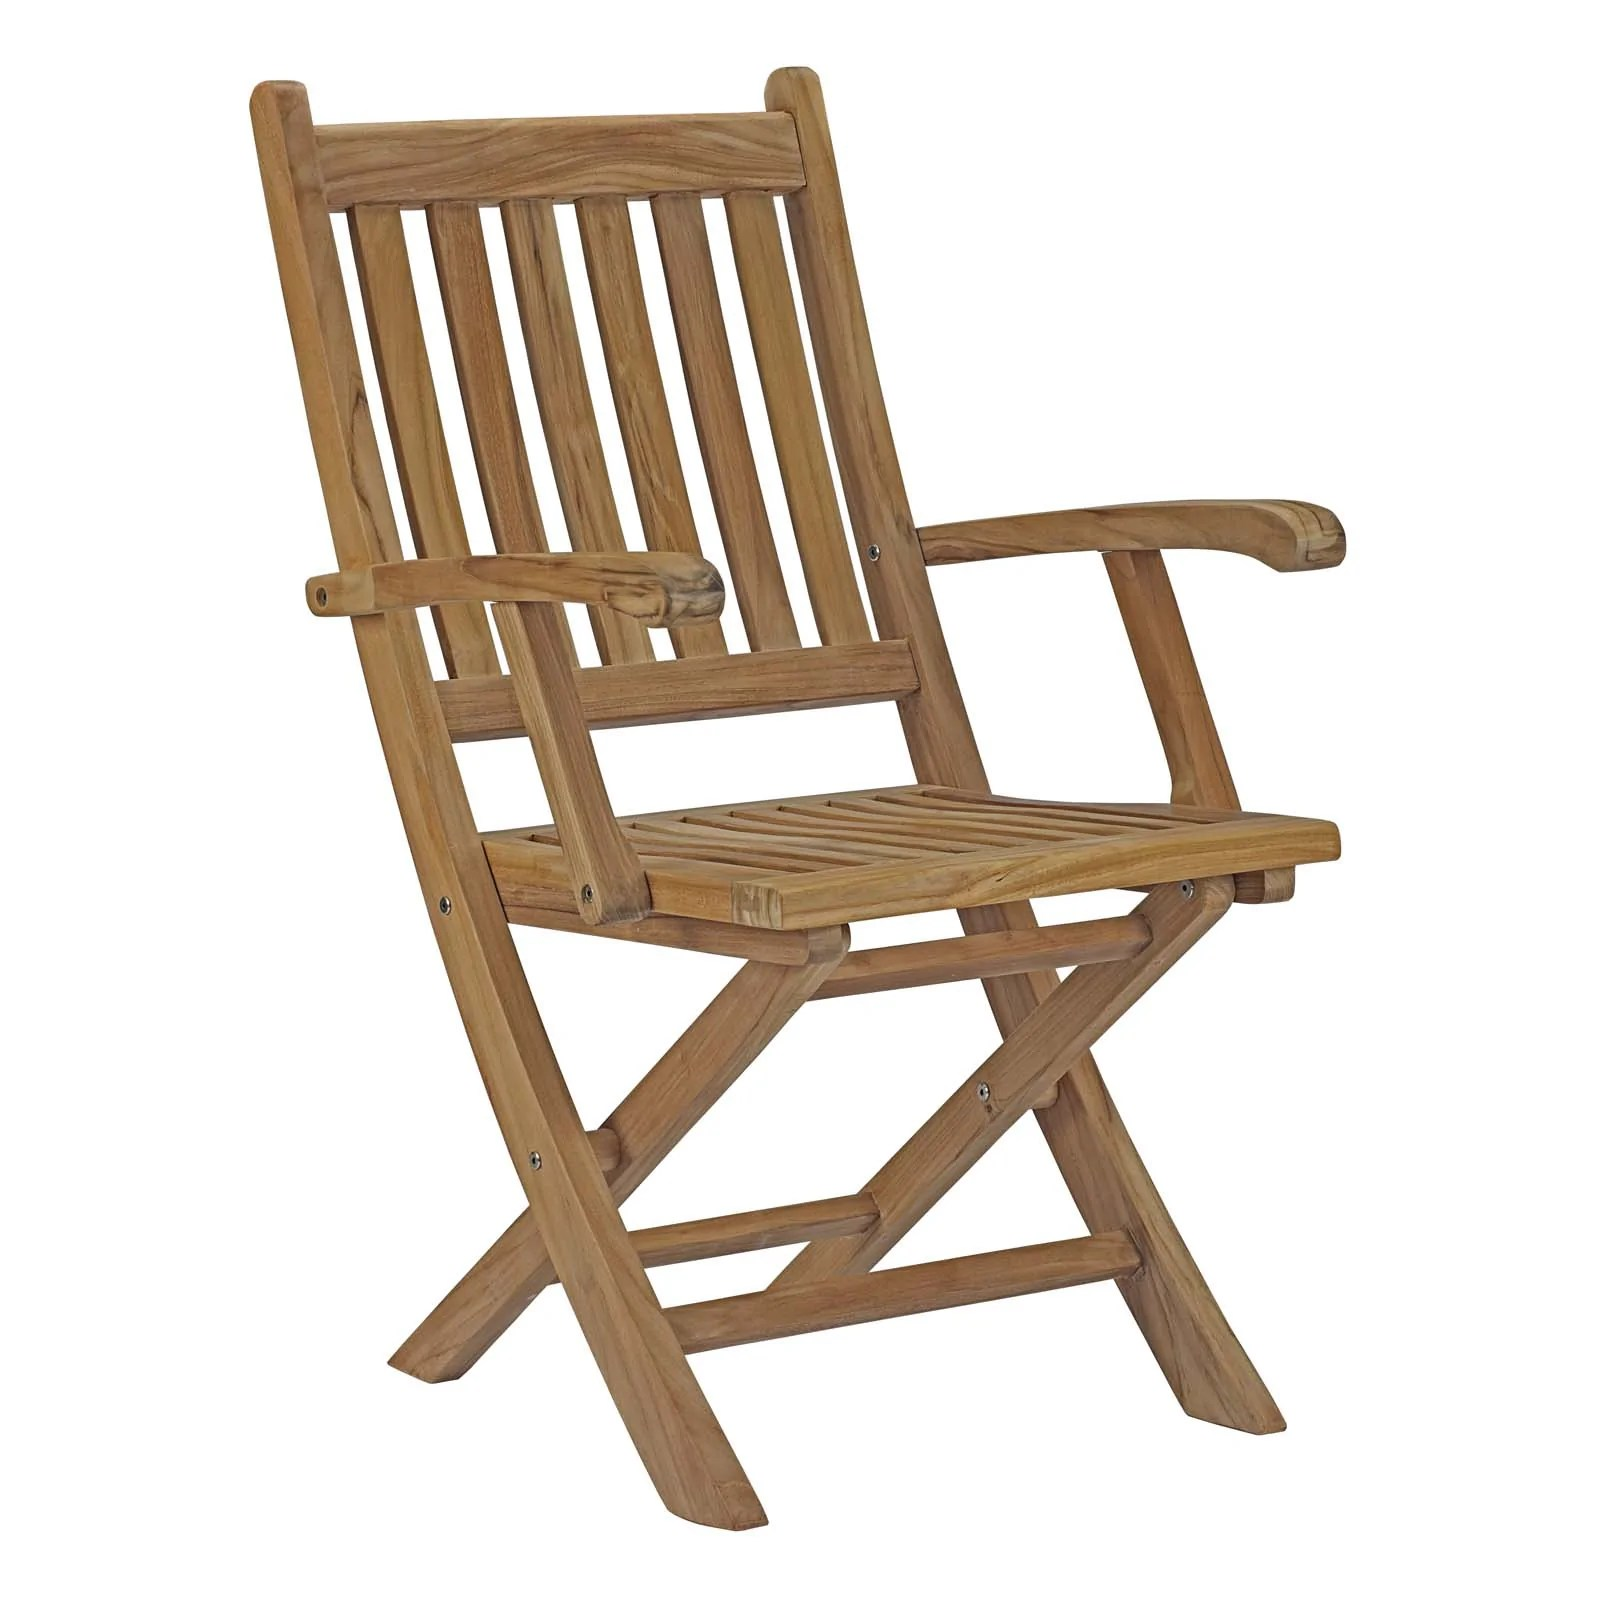 Patio Folding Chairs Modway Marina Outdoor Patio Teak Folding Chair Eei 2703